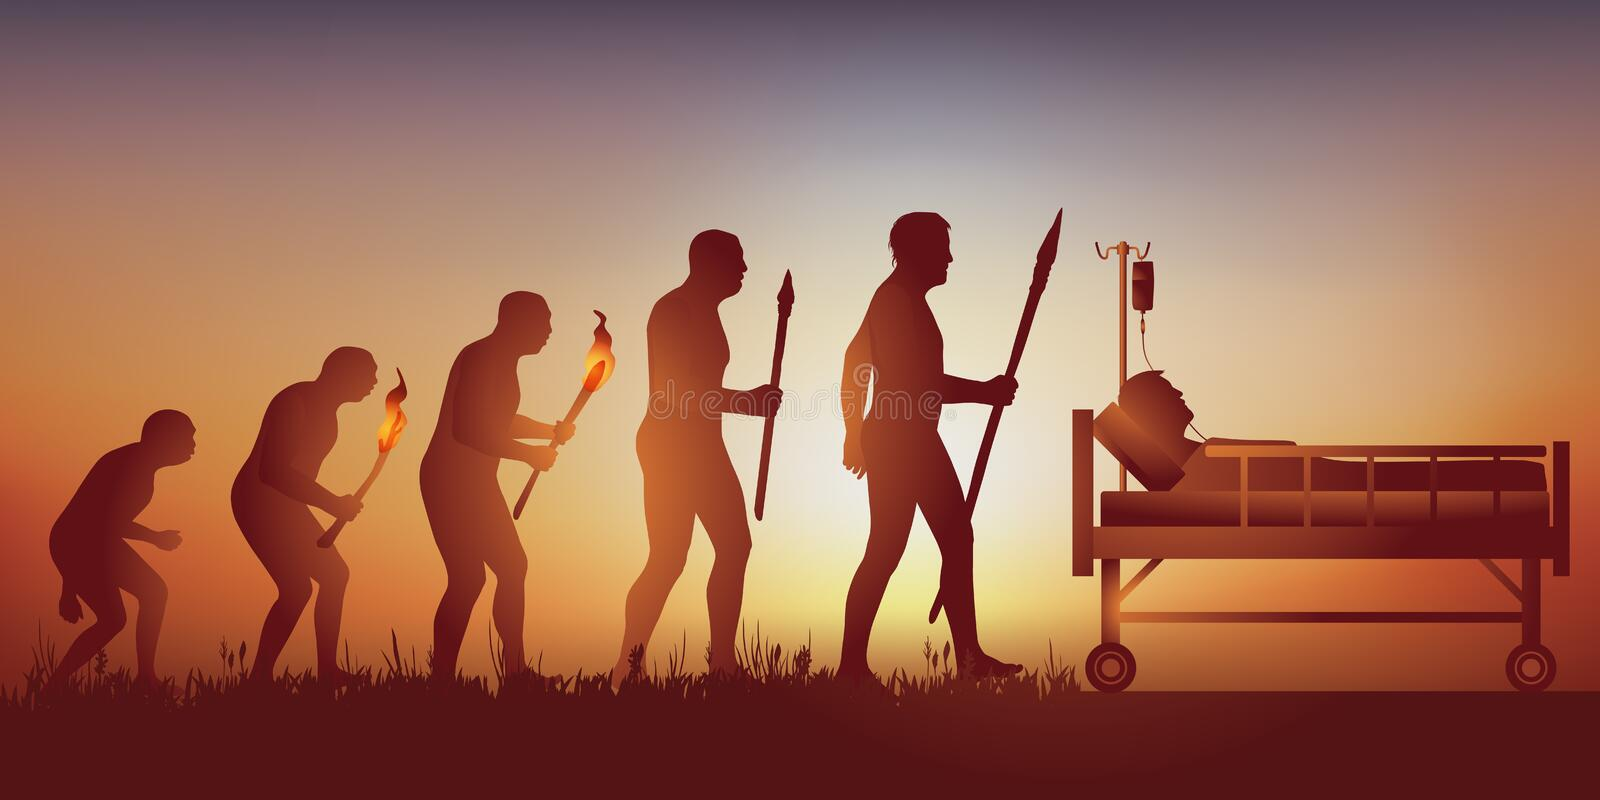 Evolution concept to symbolize the coronavirus epidemic with a man lying on a hospital bed. royalty free stock photo